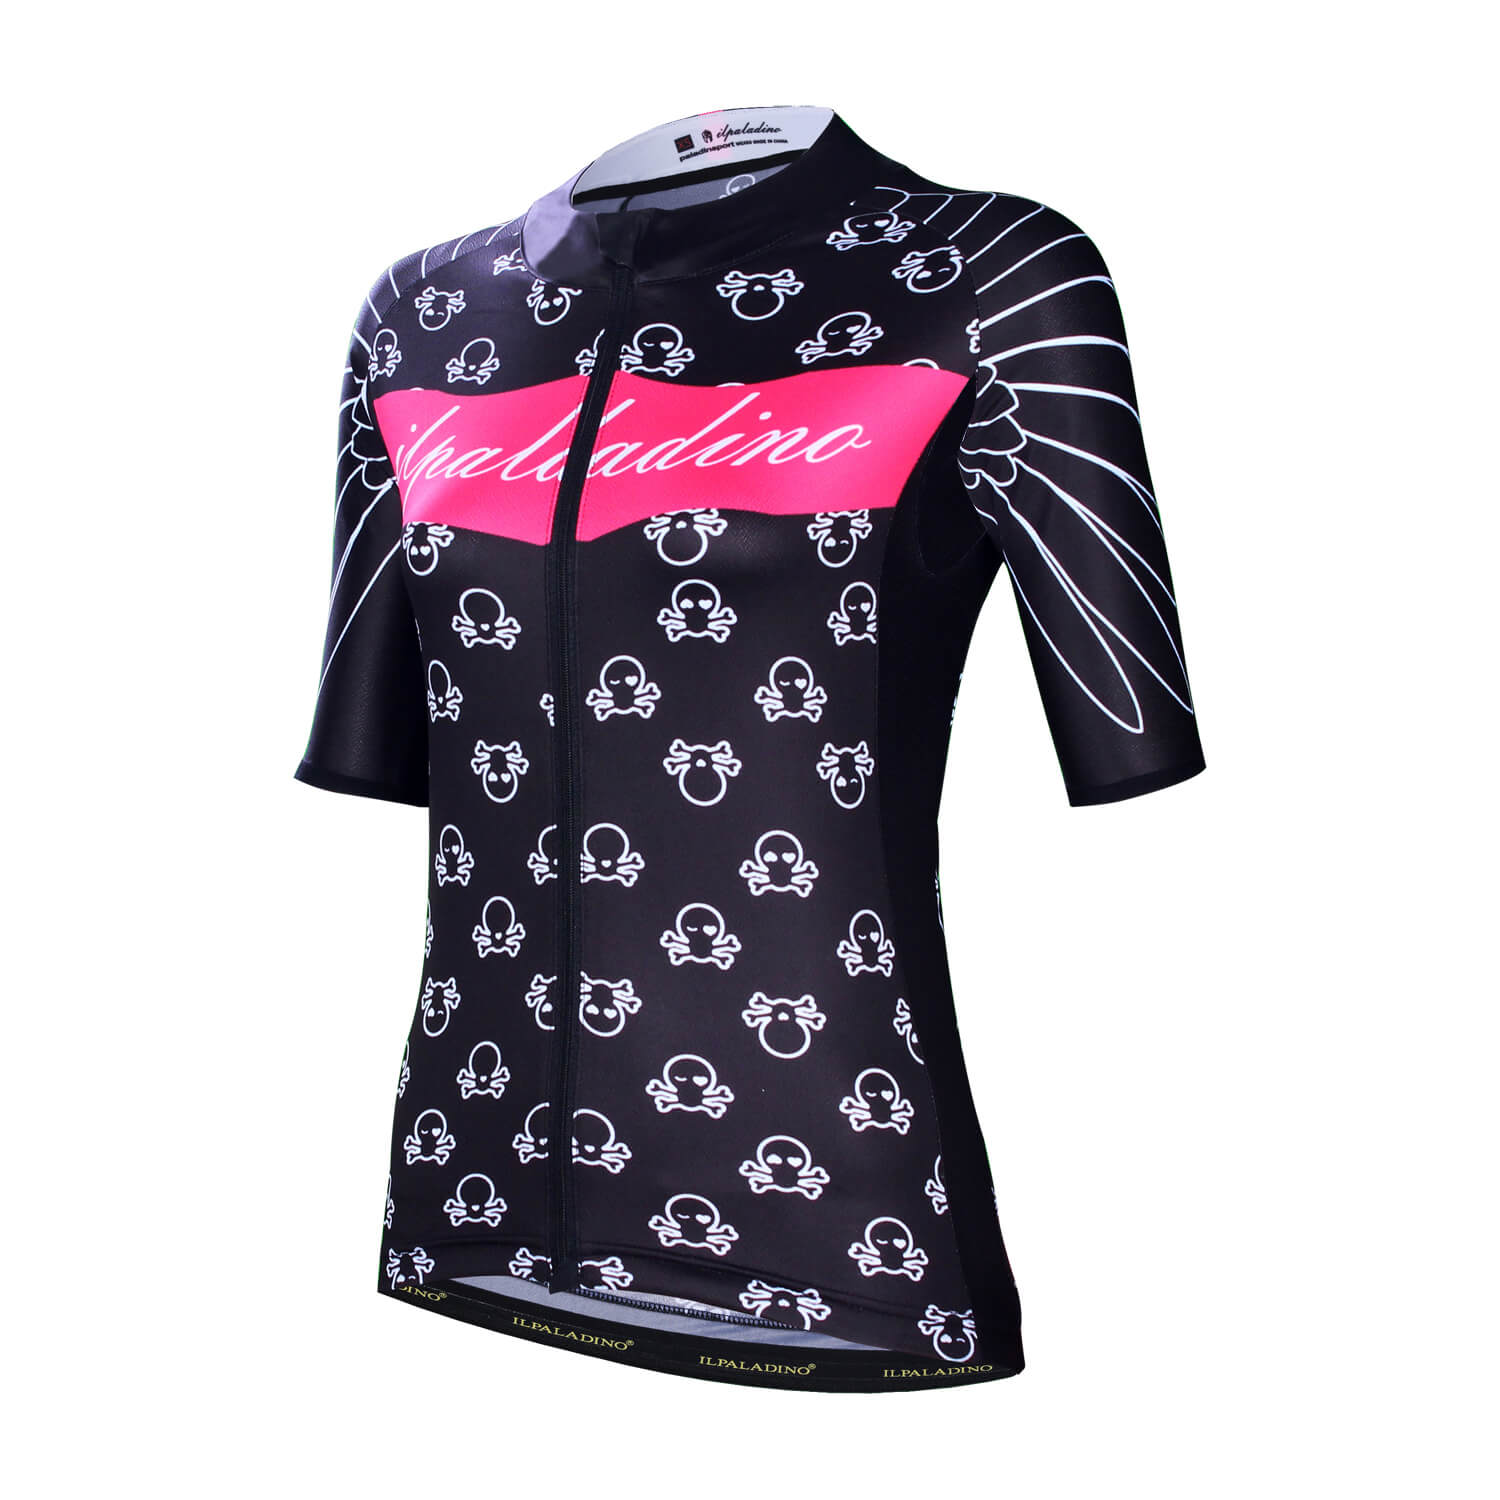 Lovely Black Bike Jersey 3xl Bicycle Clothing Womens